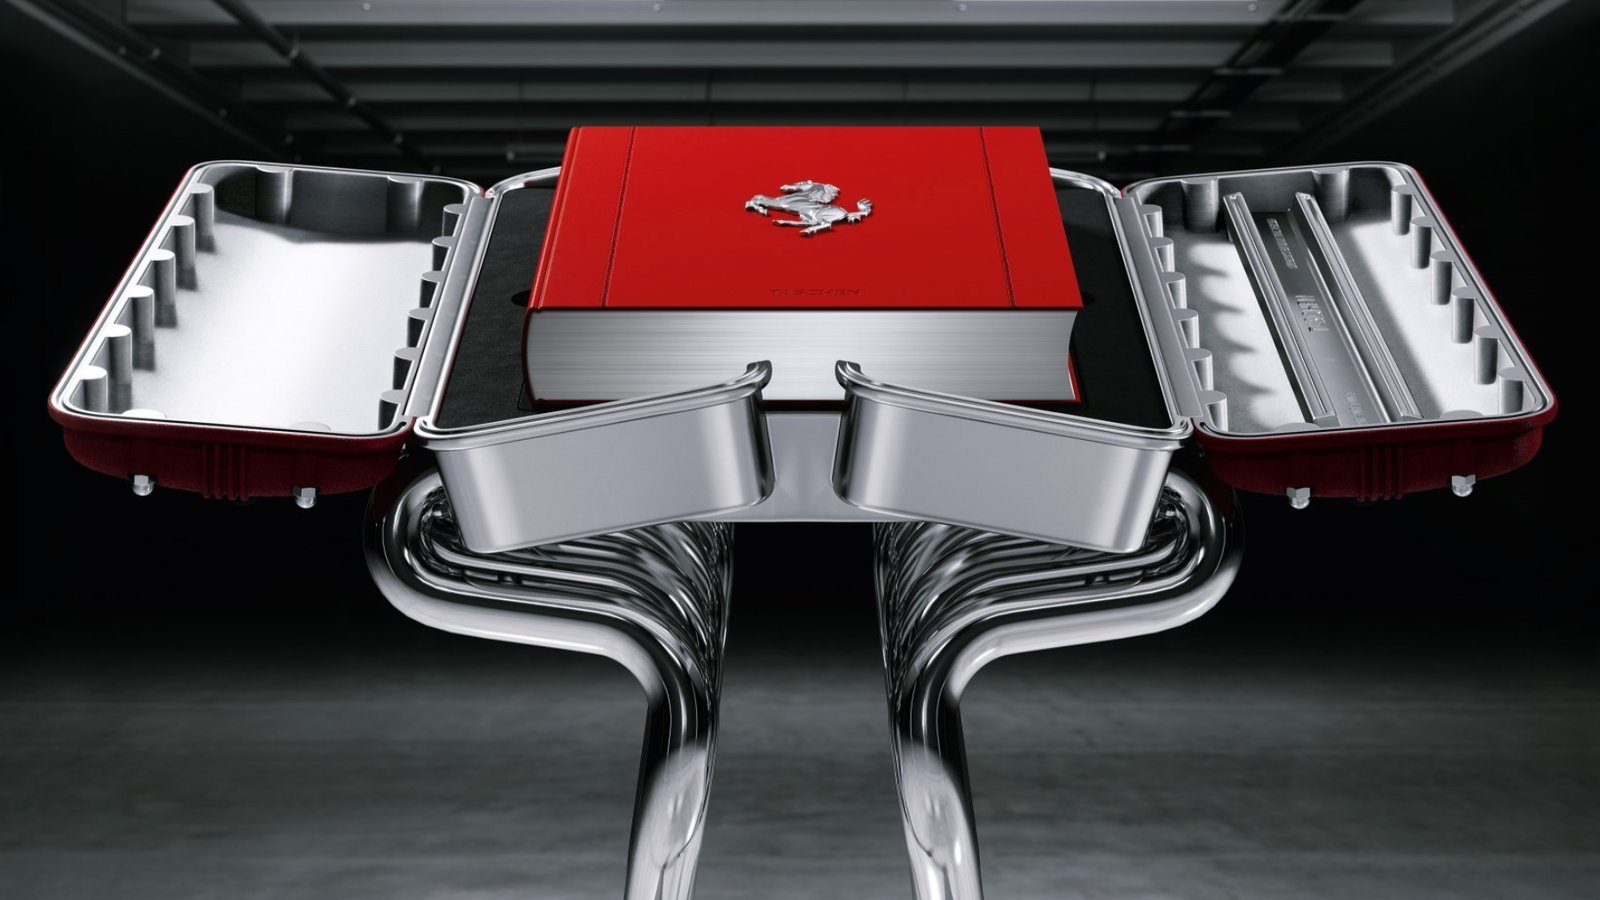 Ferrari release new book that costs £22,500 – more than the average price of a car